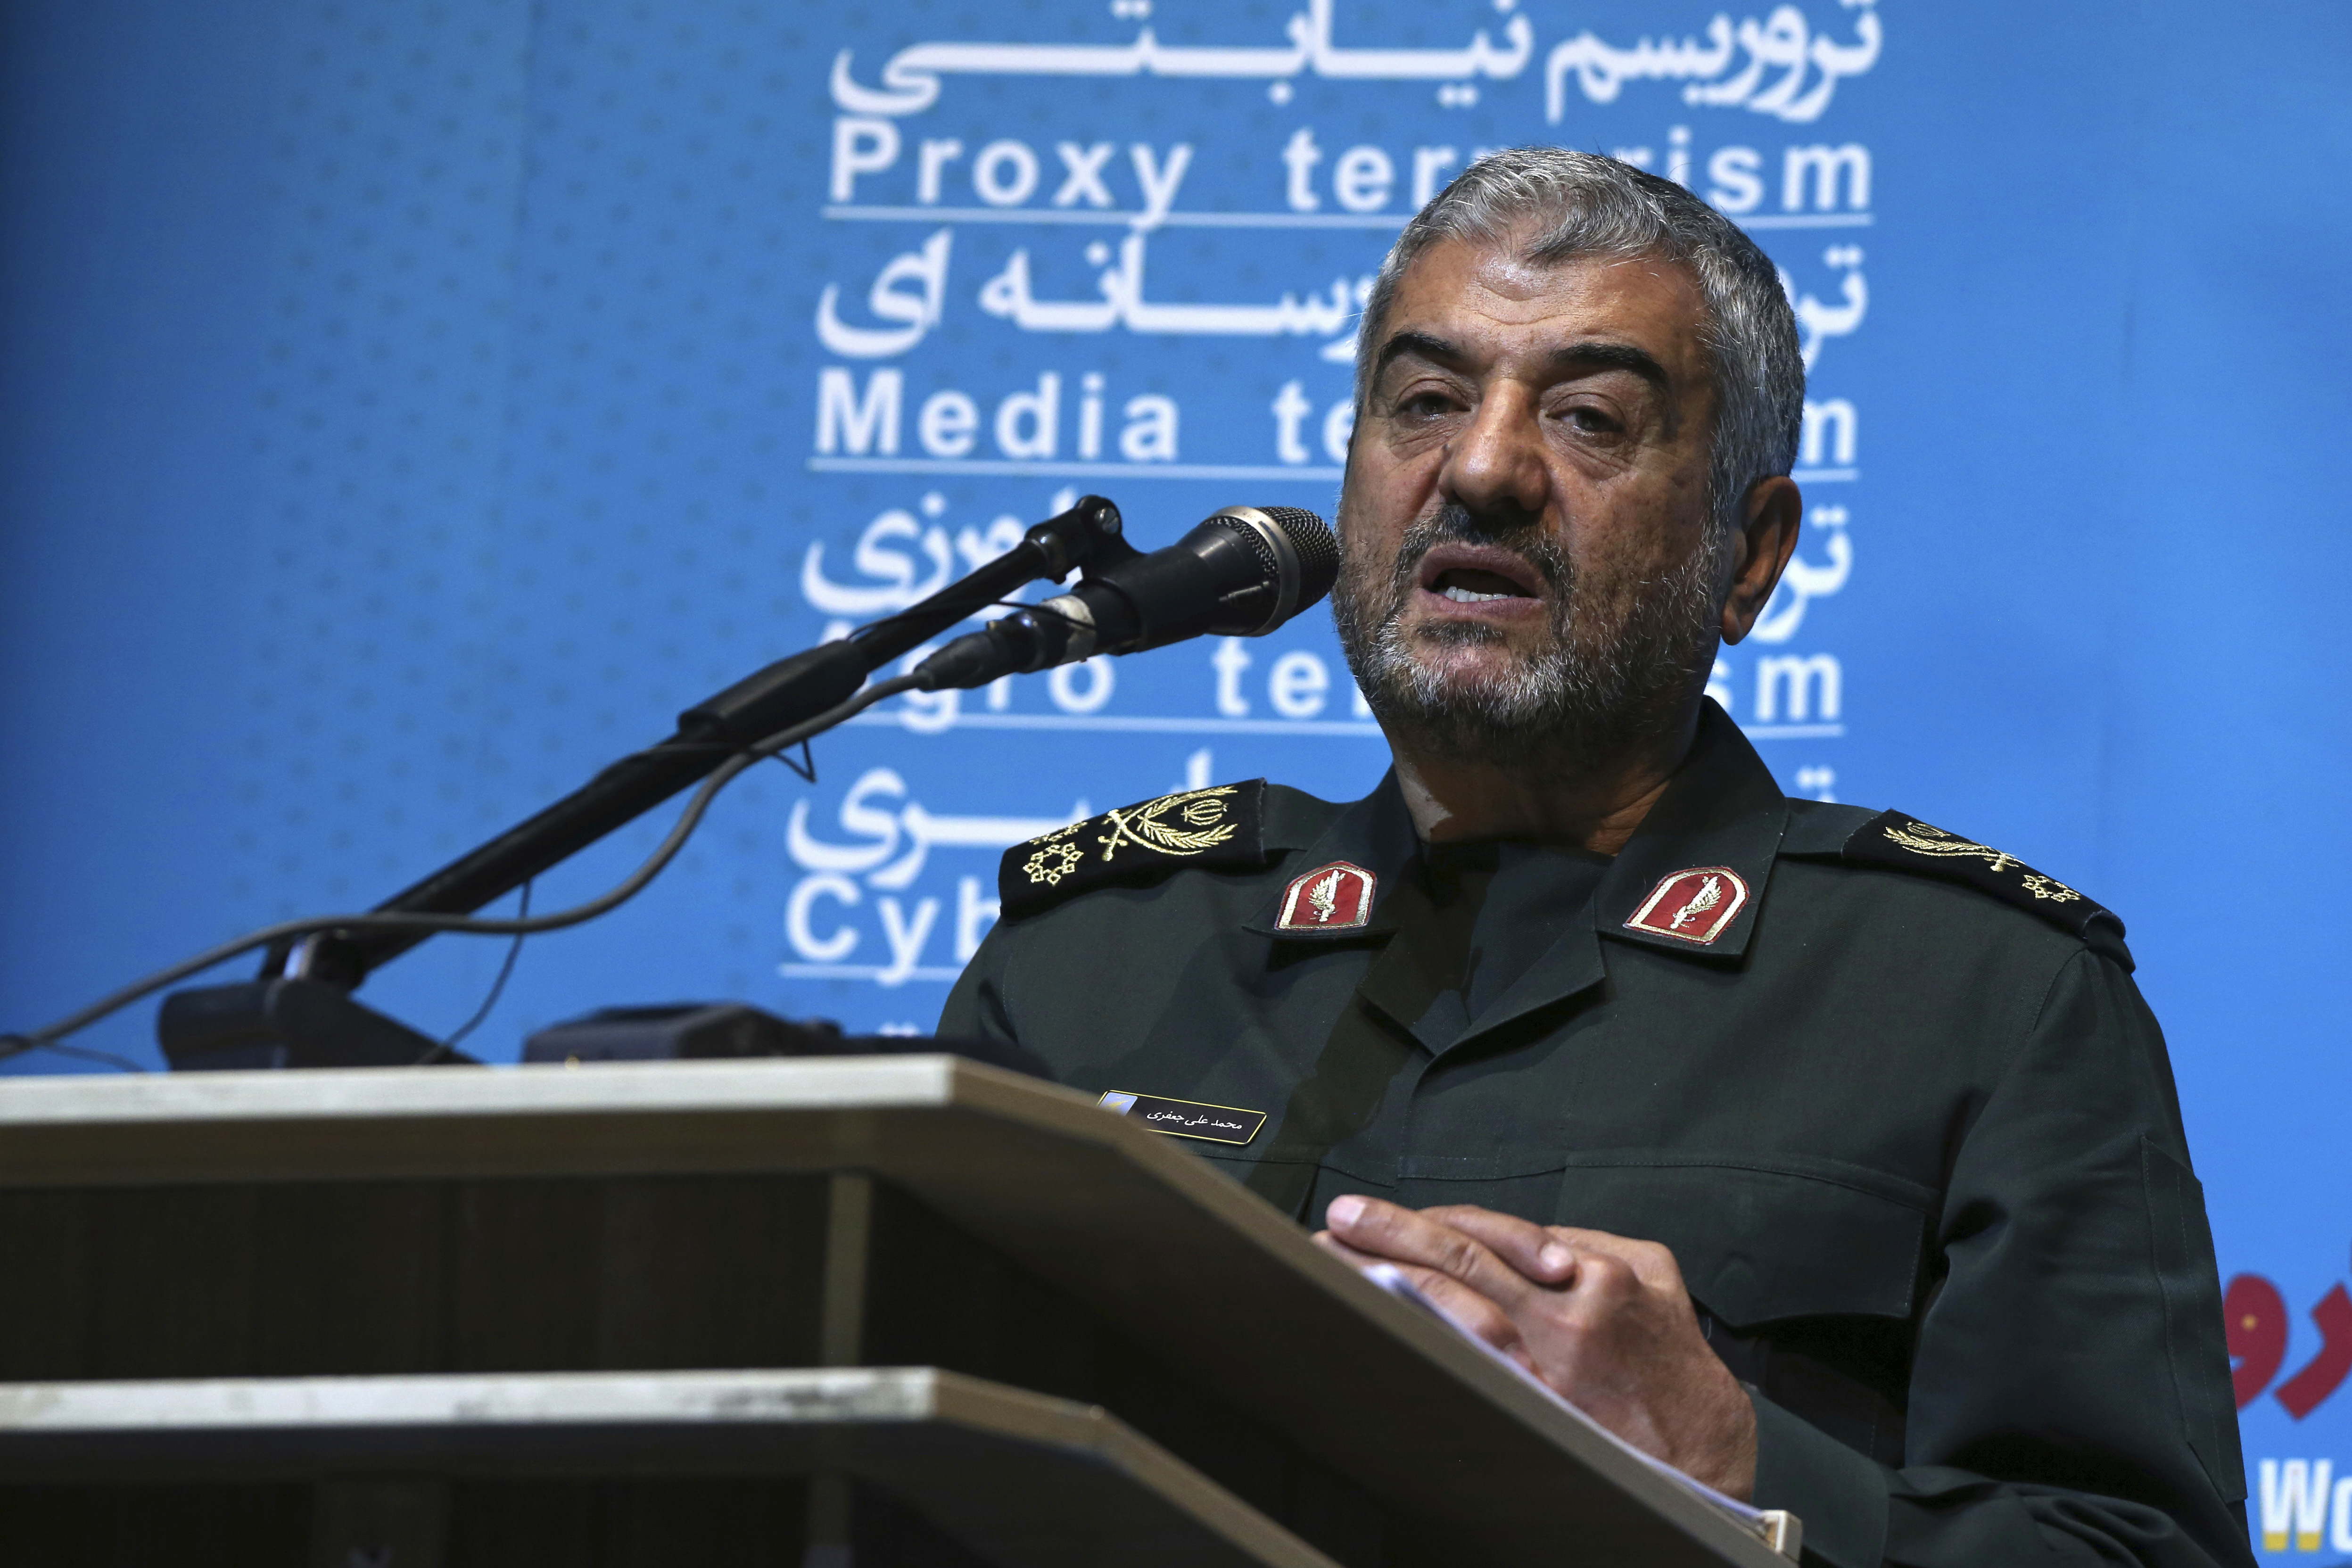 """The head of Iran's paramilitary Revolutionary Guard Gen. Mohammad Ali Jafari speaks during a conference called """"A World Without Terror,"""" in Tehran, Oct. 31, 2017."""